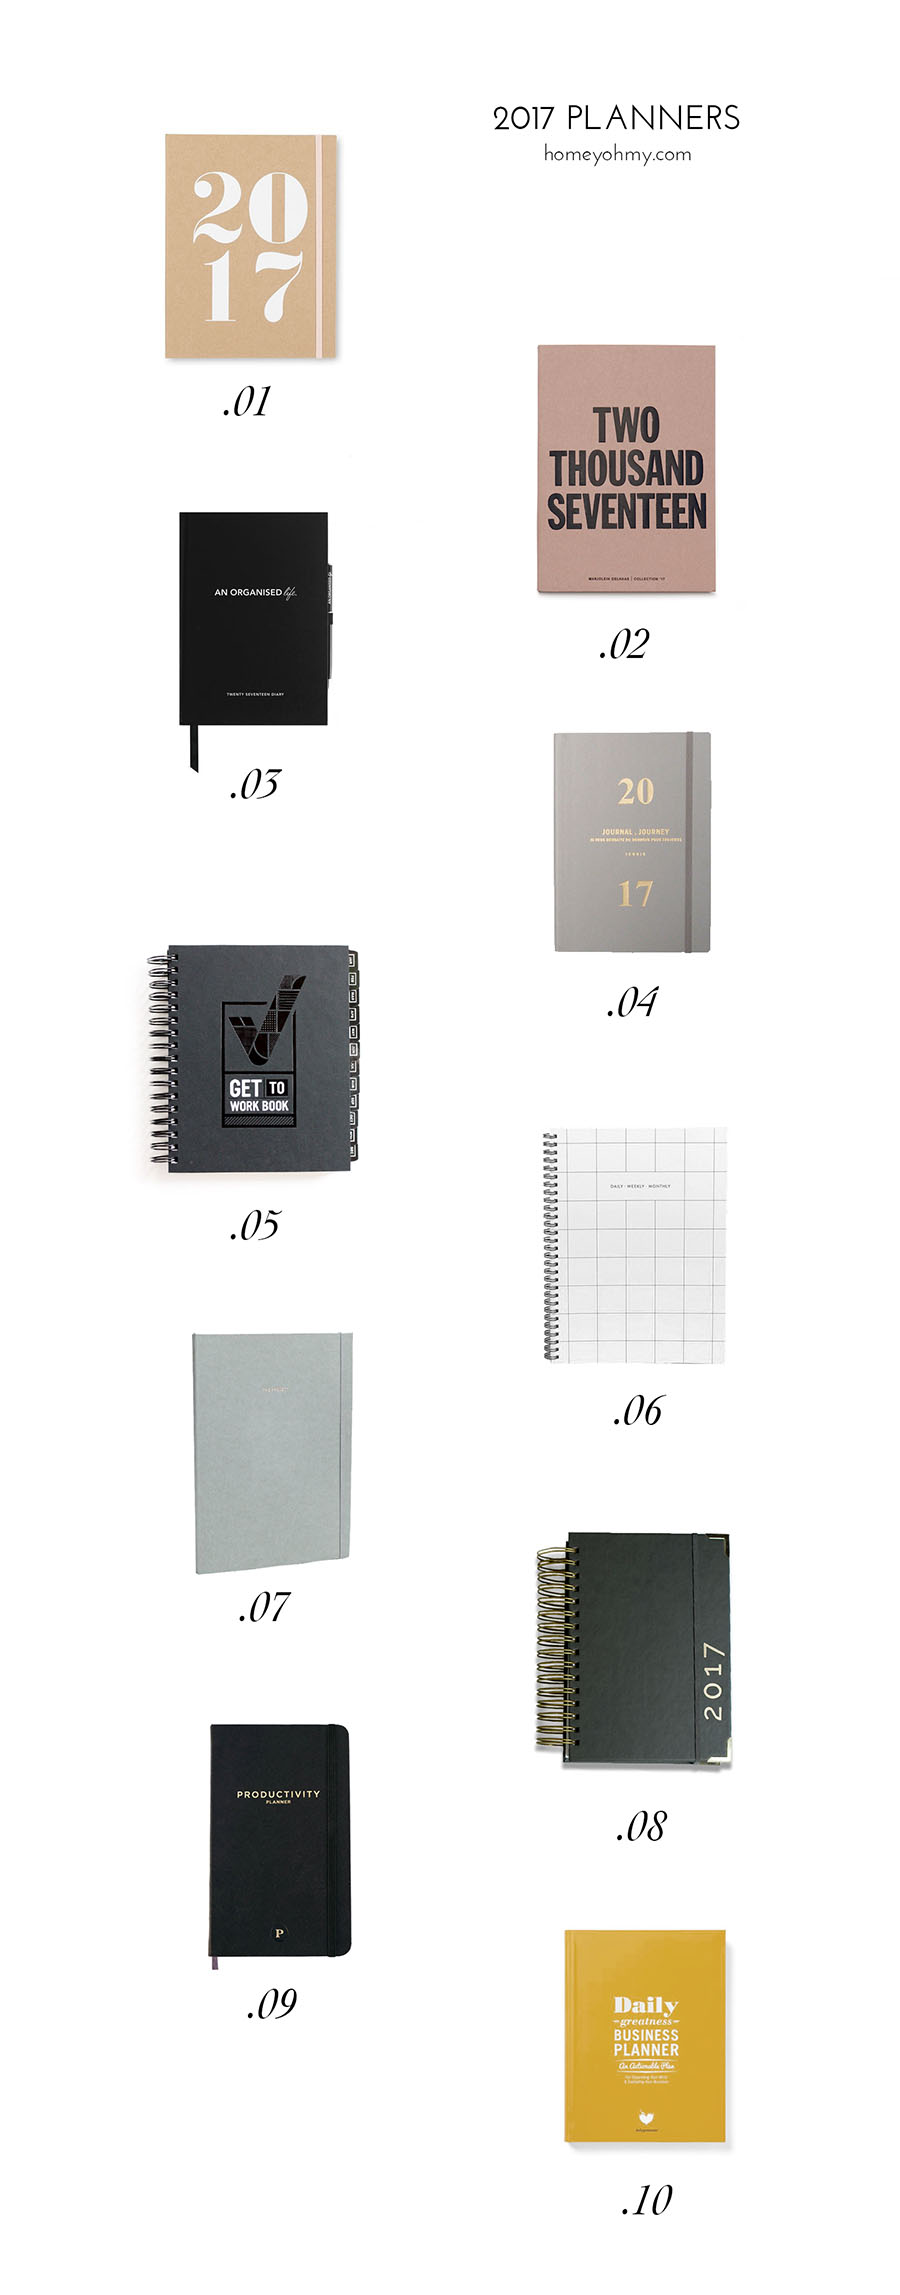 2017planners